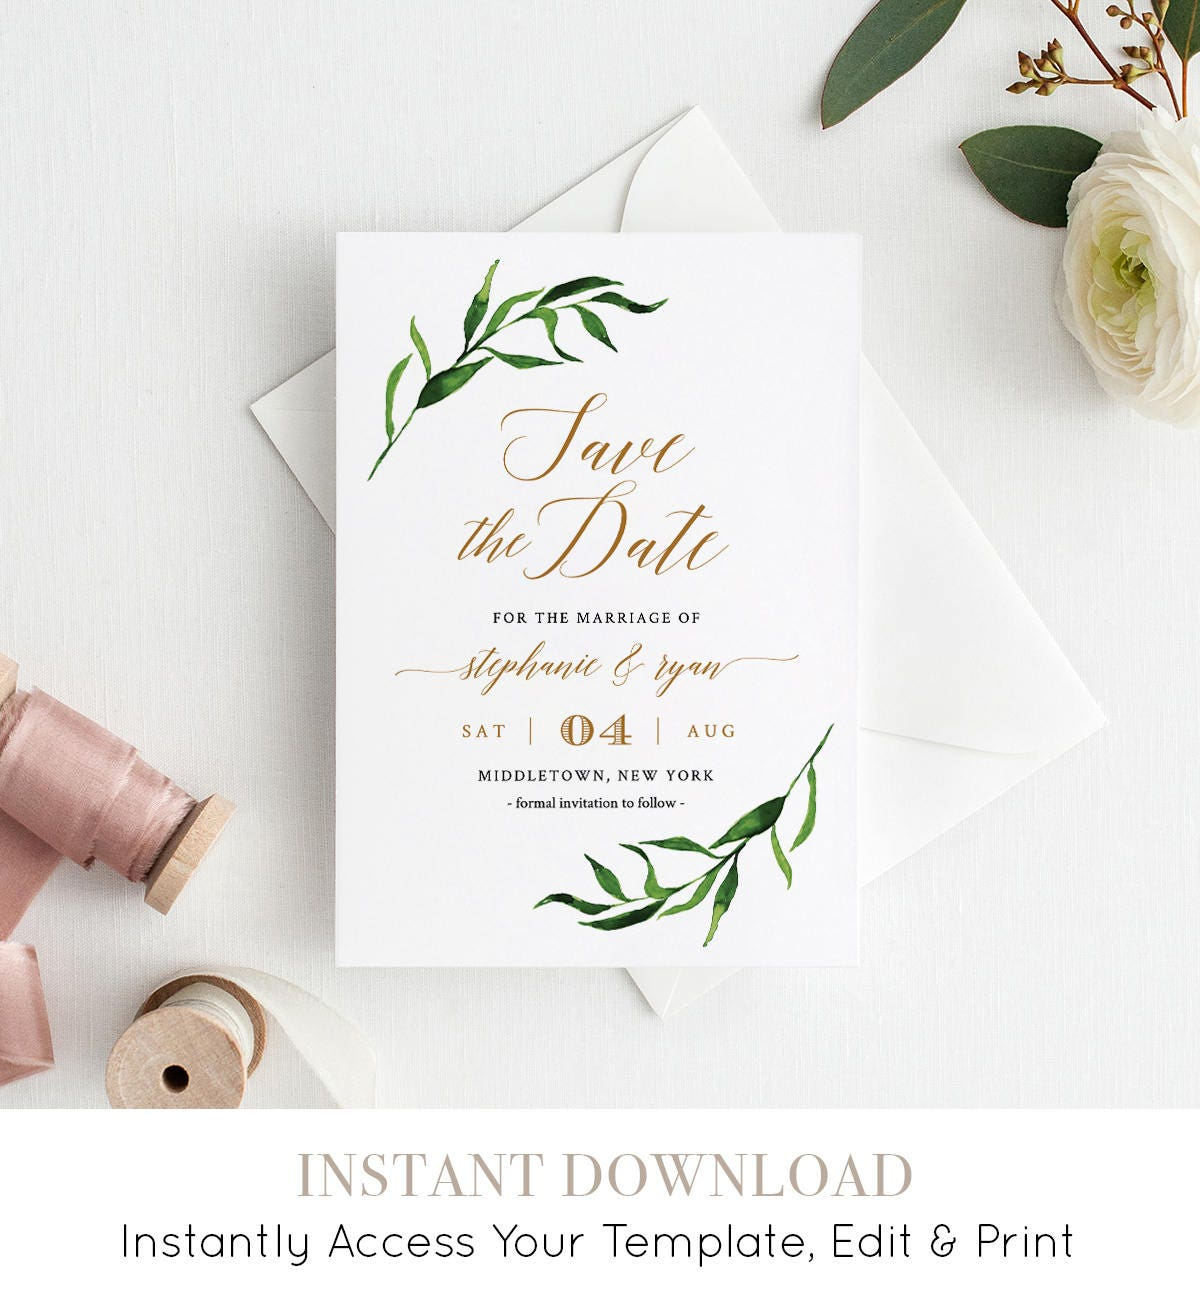 save the date printable save the date cards template greenery wedding watercolor instant download fully editable templett 013 102sd